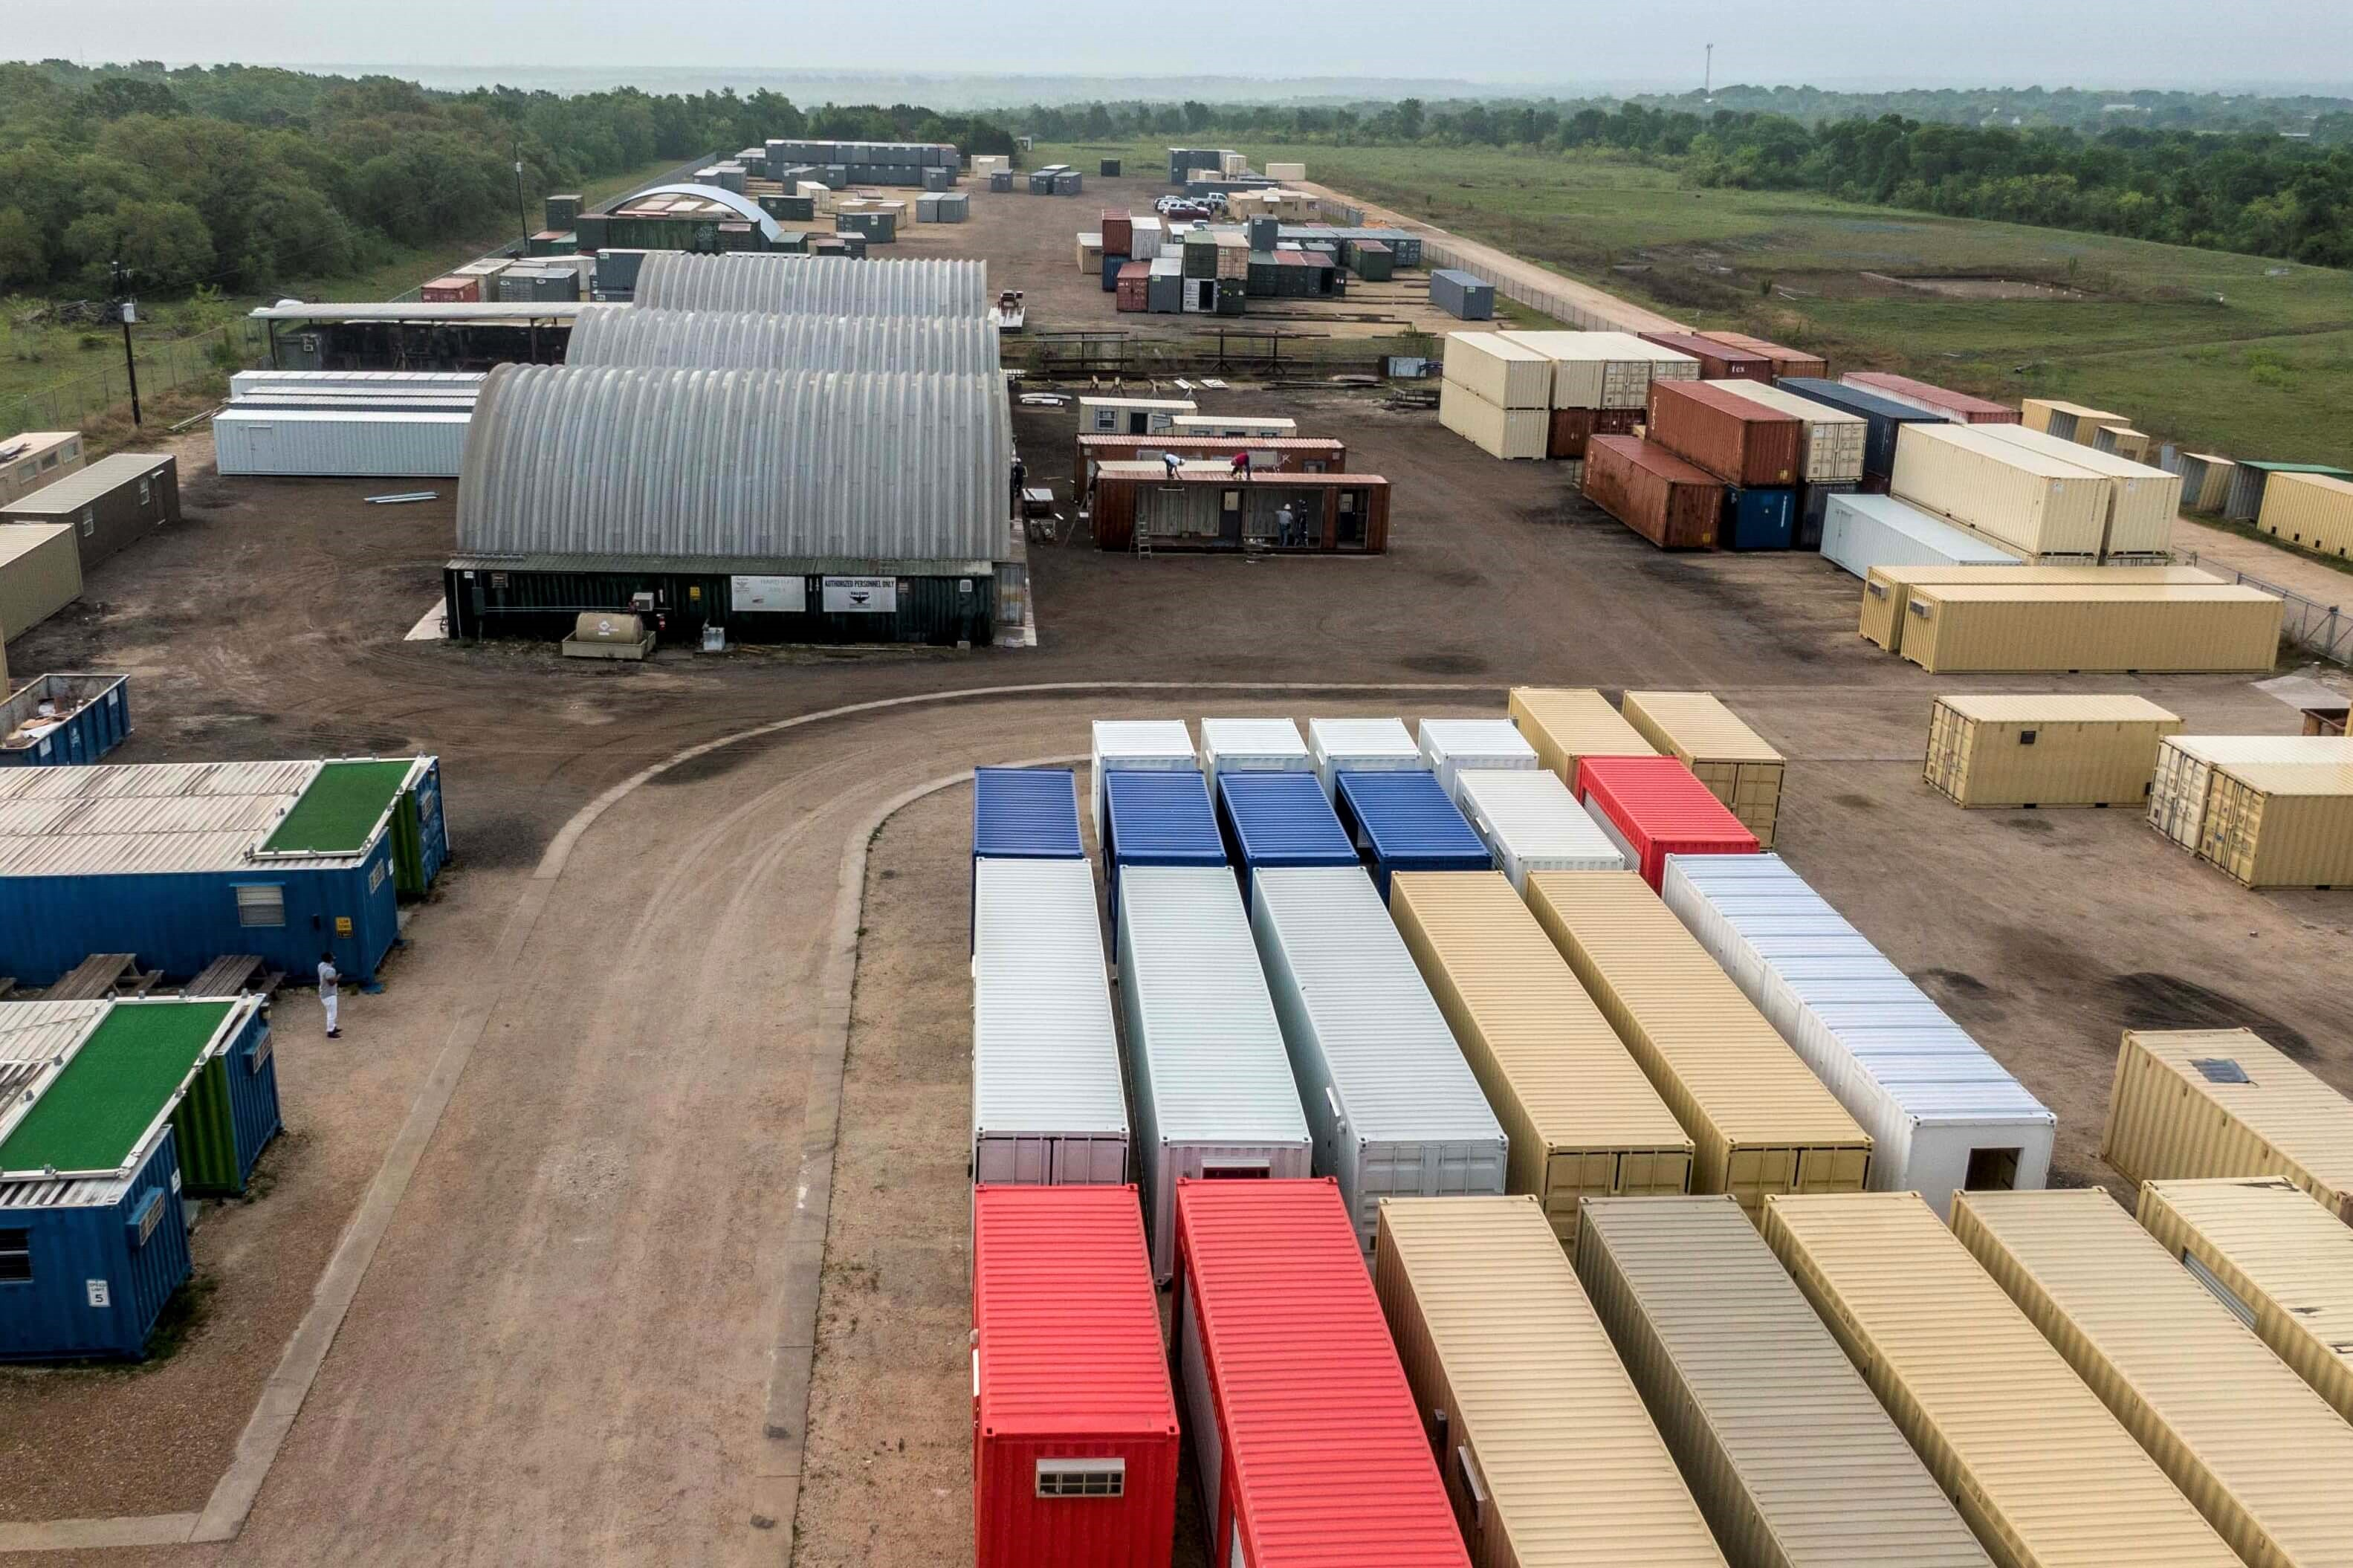 How the Structural Strength of Shipping Containers Stands Up to Severe Weather